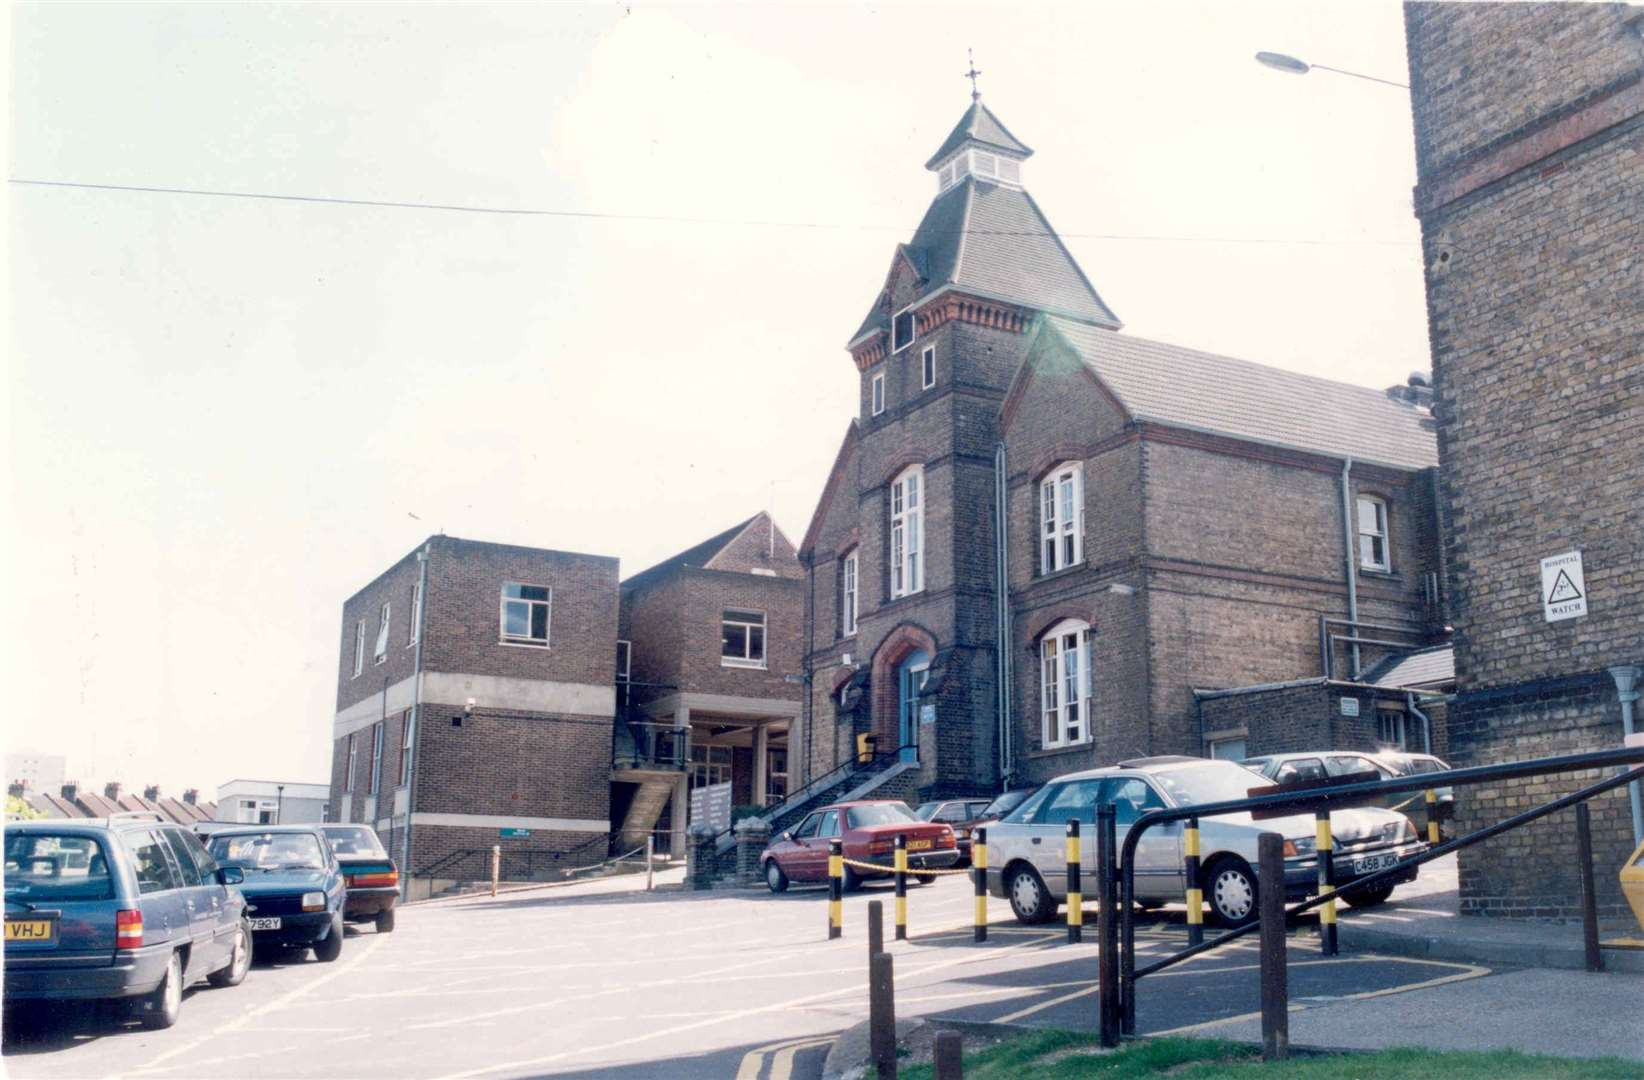 The former Chatham Workhouse became All Saint's Hospital in Magpie Hall Road, Chatham, pictured here in 1993. Picture: Images of Medway book